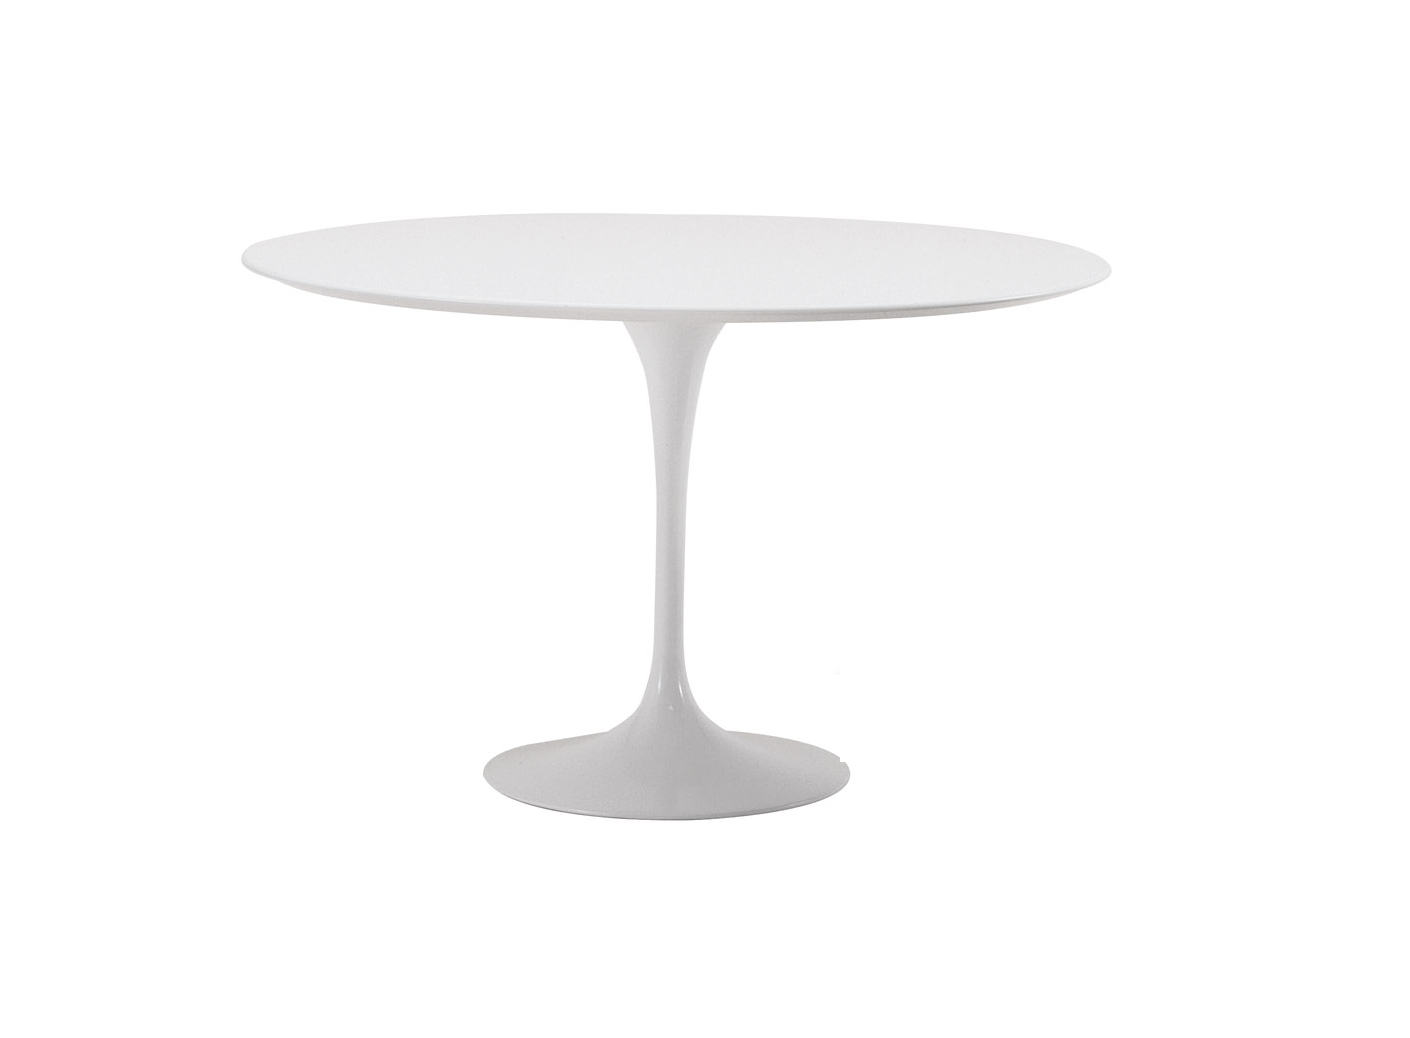 Table tulipe knoll imitation - Imitation mobilier design ...